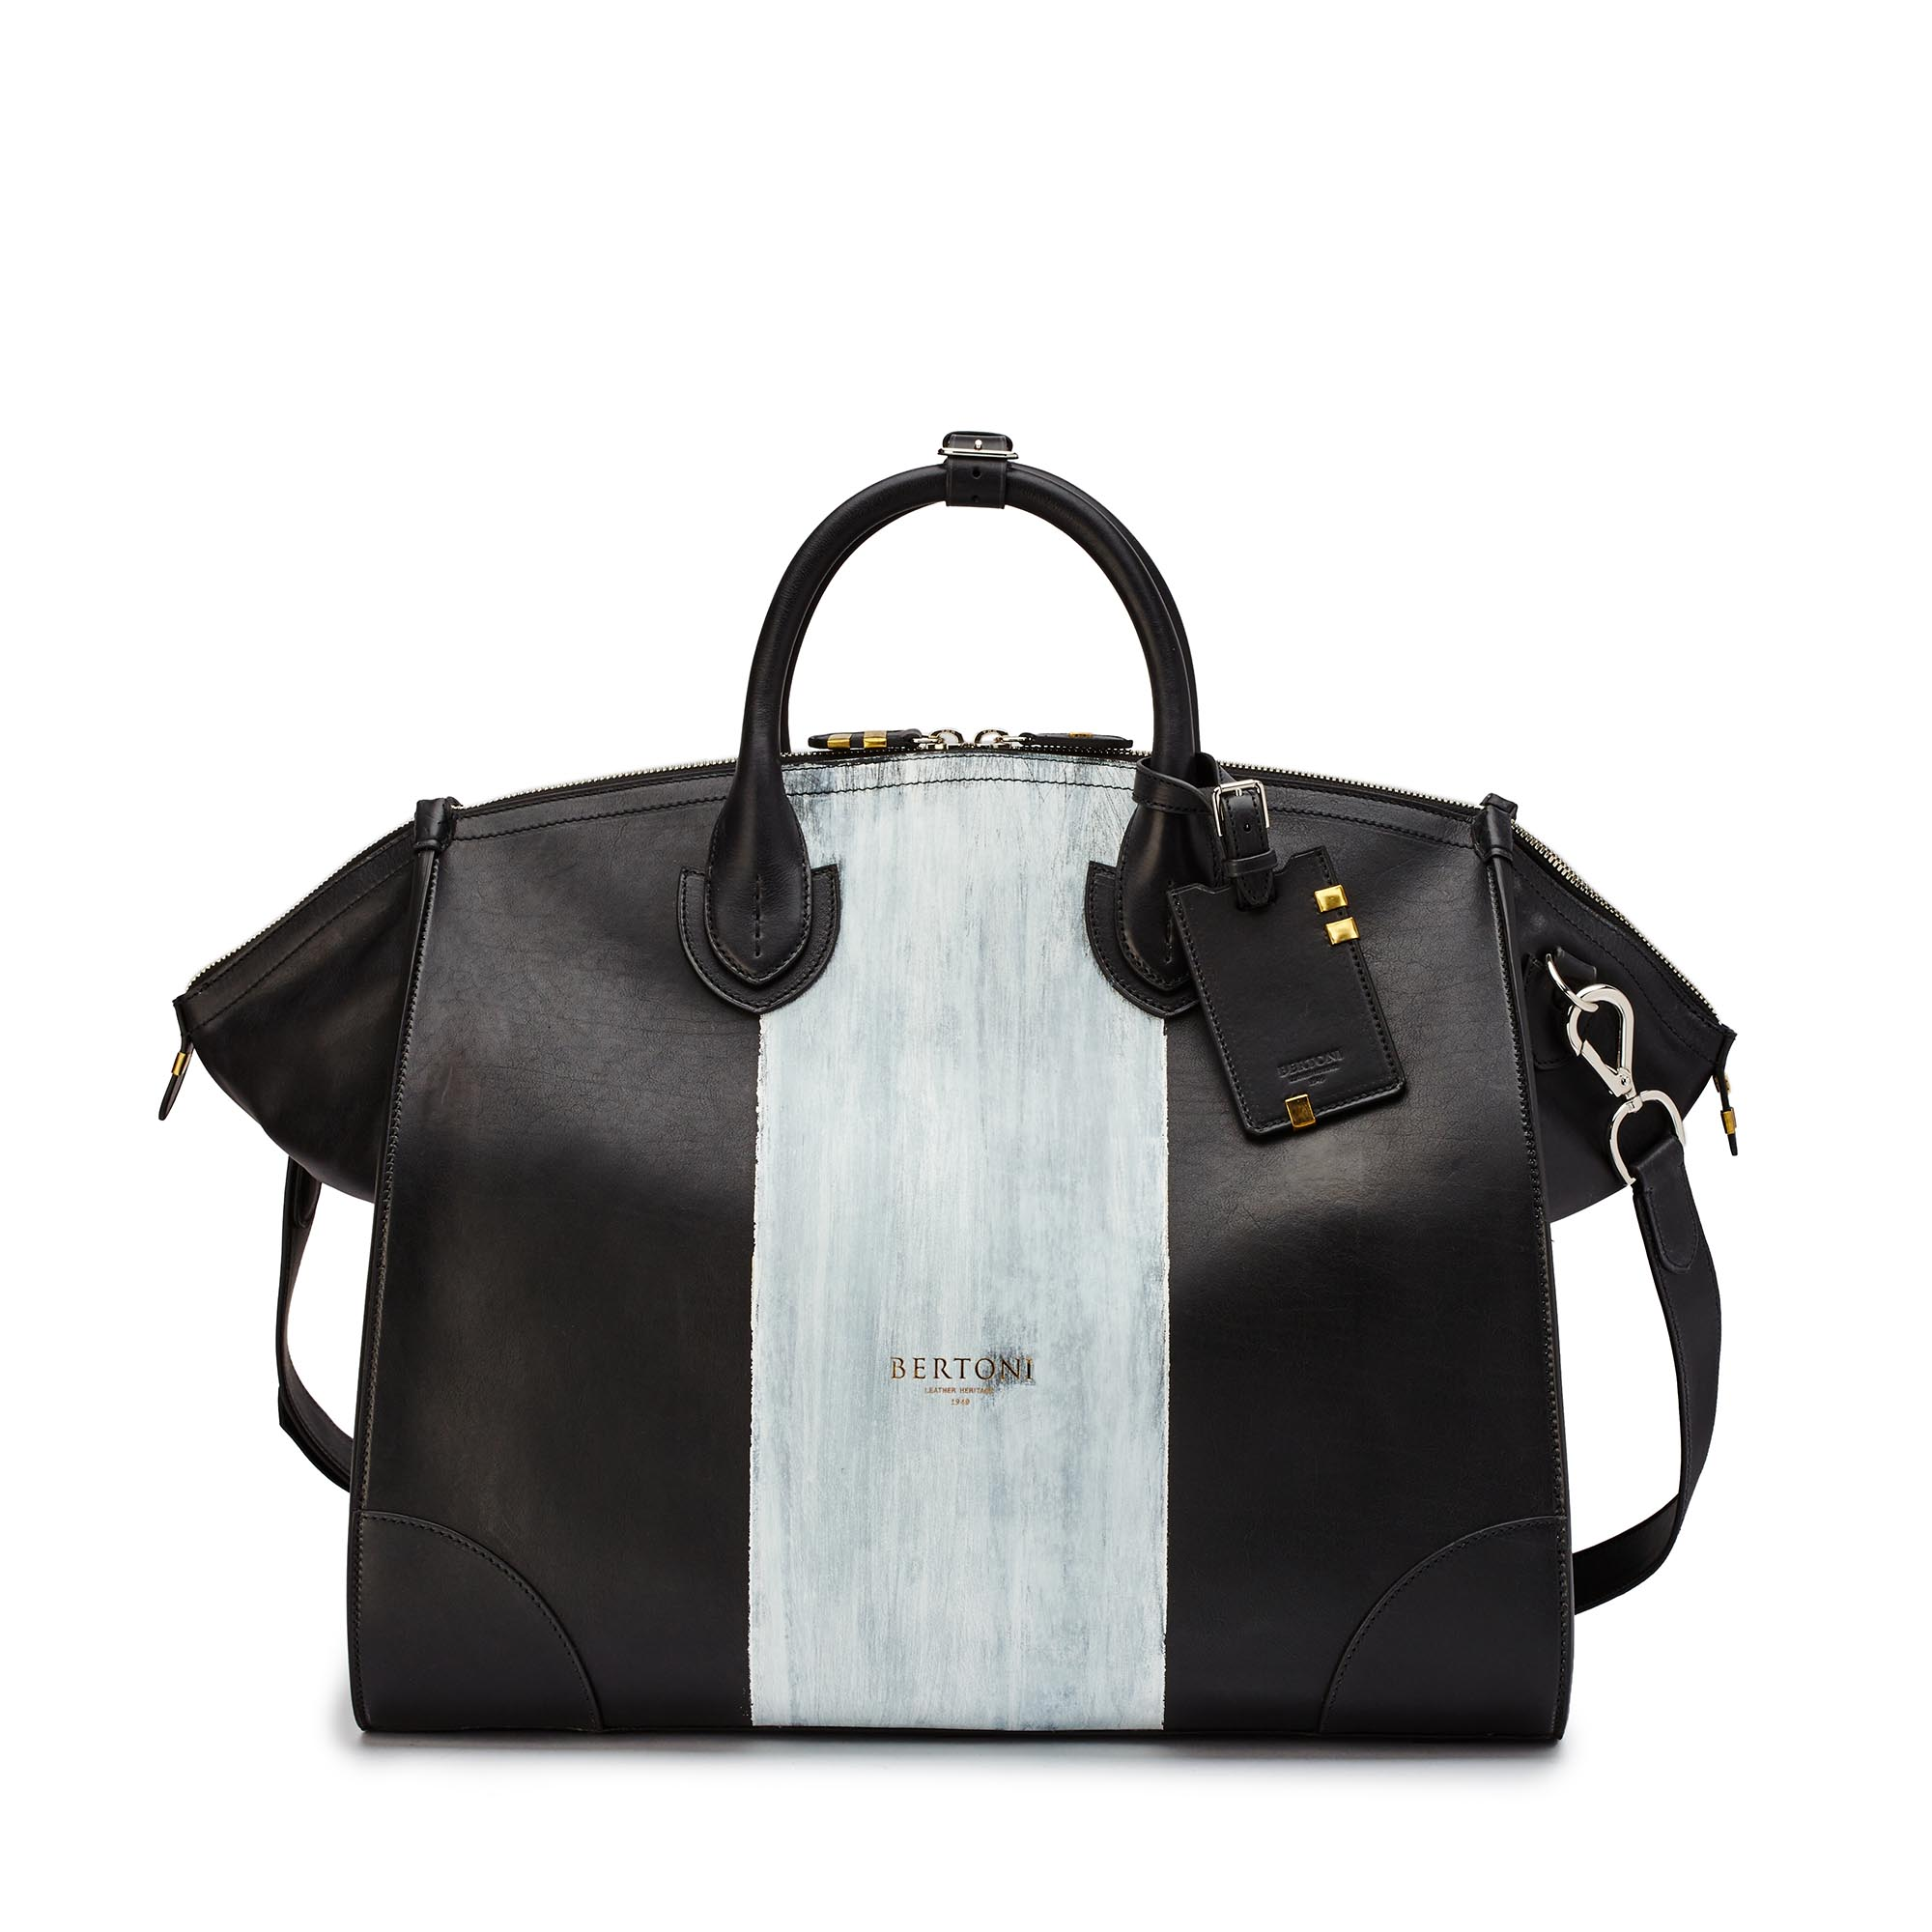 Gulliver-black-ivory-rock-calf-bag-Bertoni-1949_01